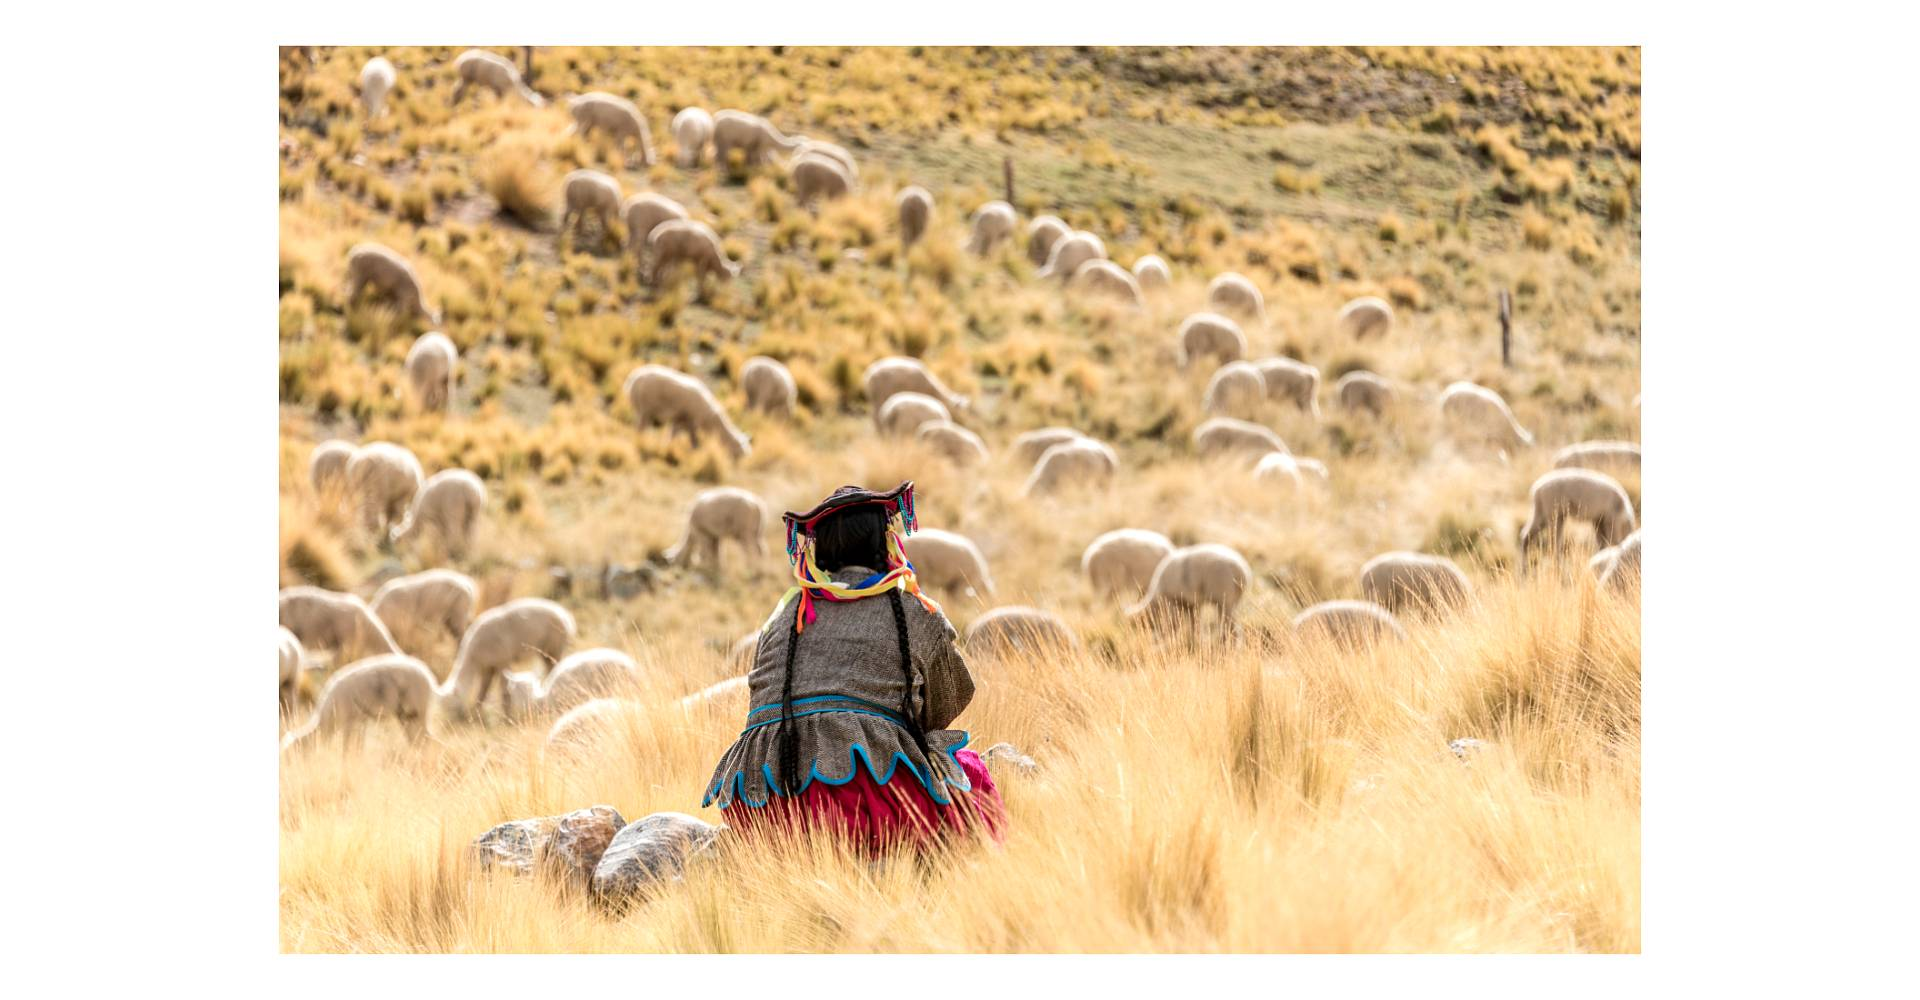 Alpaca farmer overseeing her herd in Peru